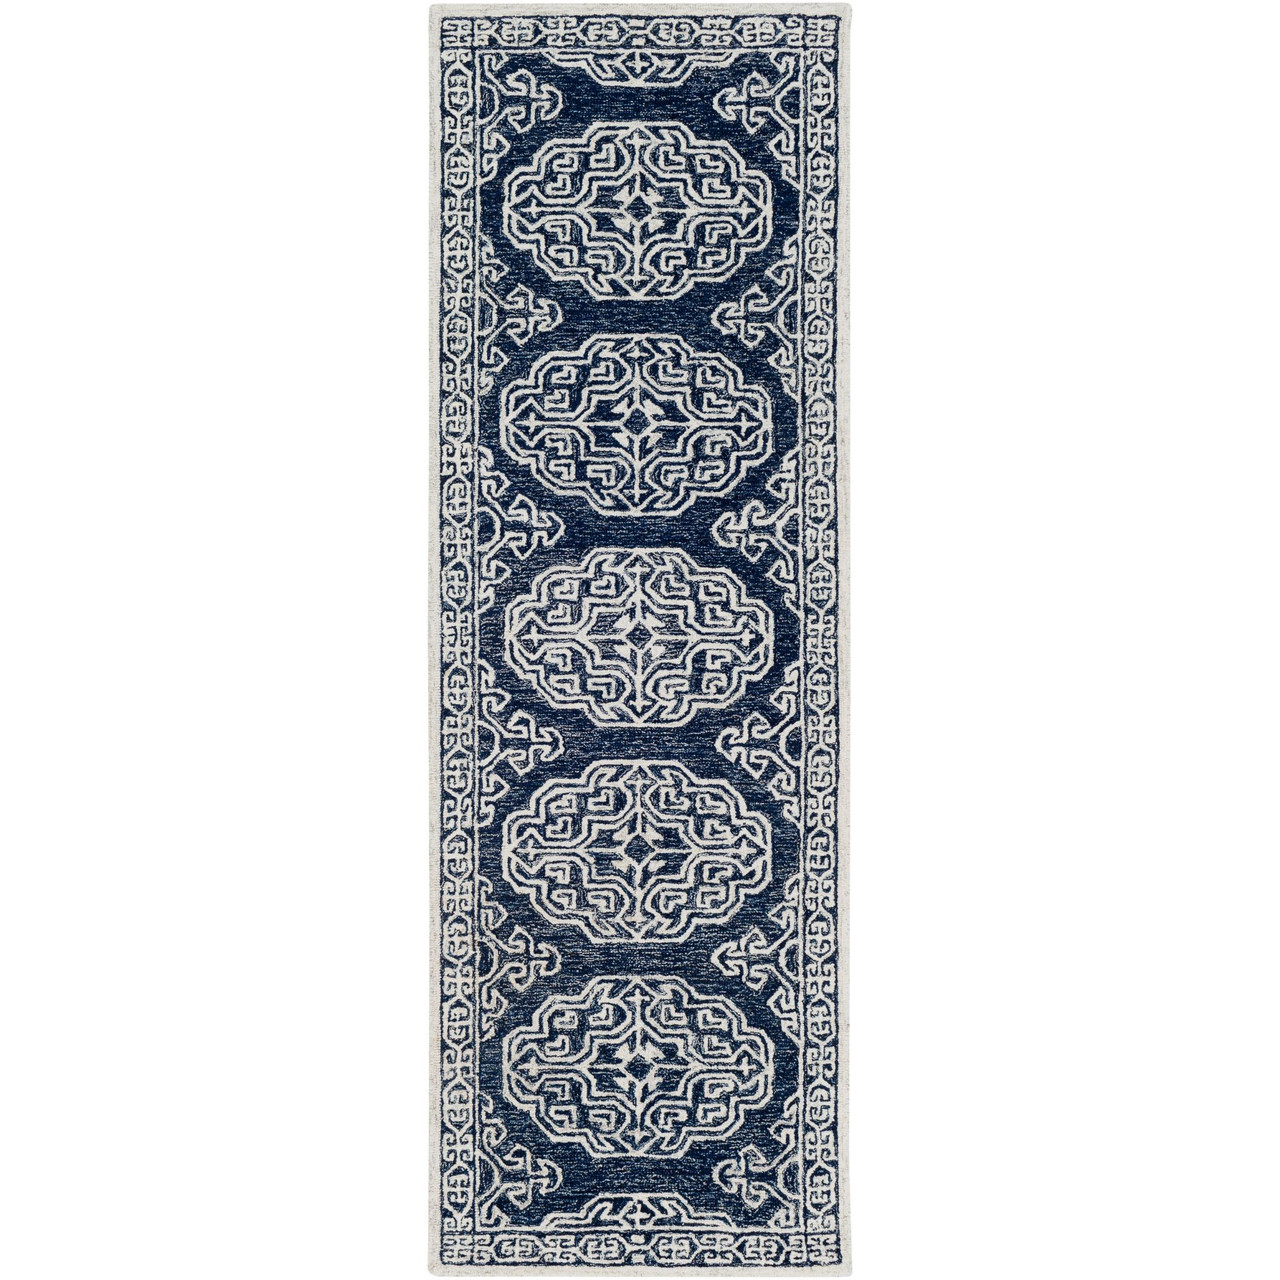 Picture of: 2 5 X 8 Contemporary Style Navy Blue Cream White Rectangular Hand Tufted Wool Area Rug Runner Christmas Central